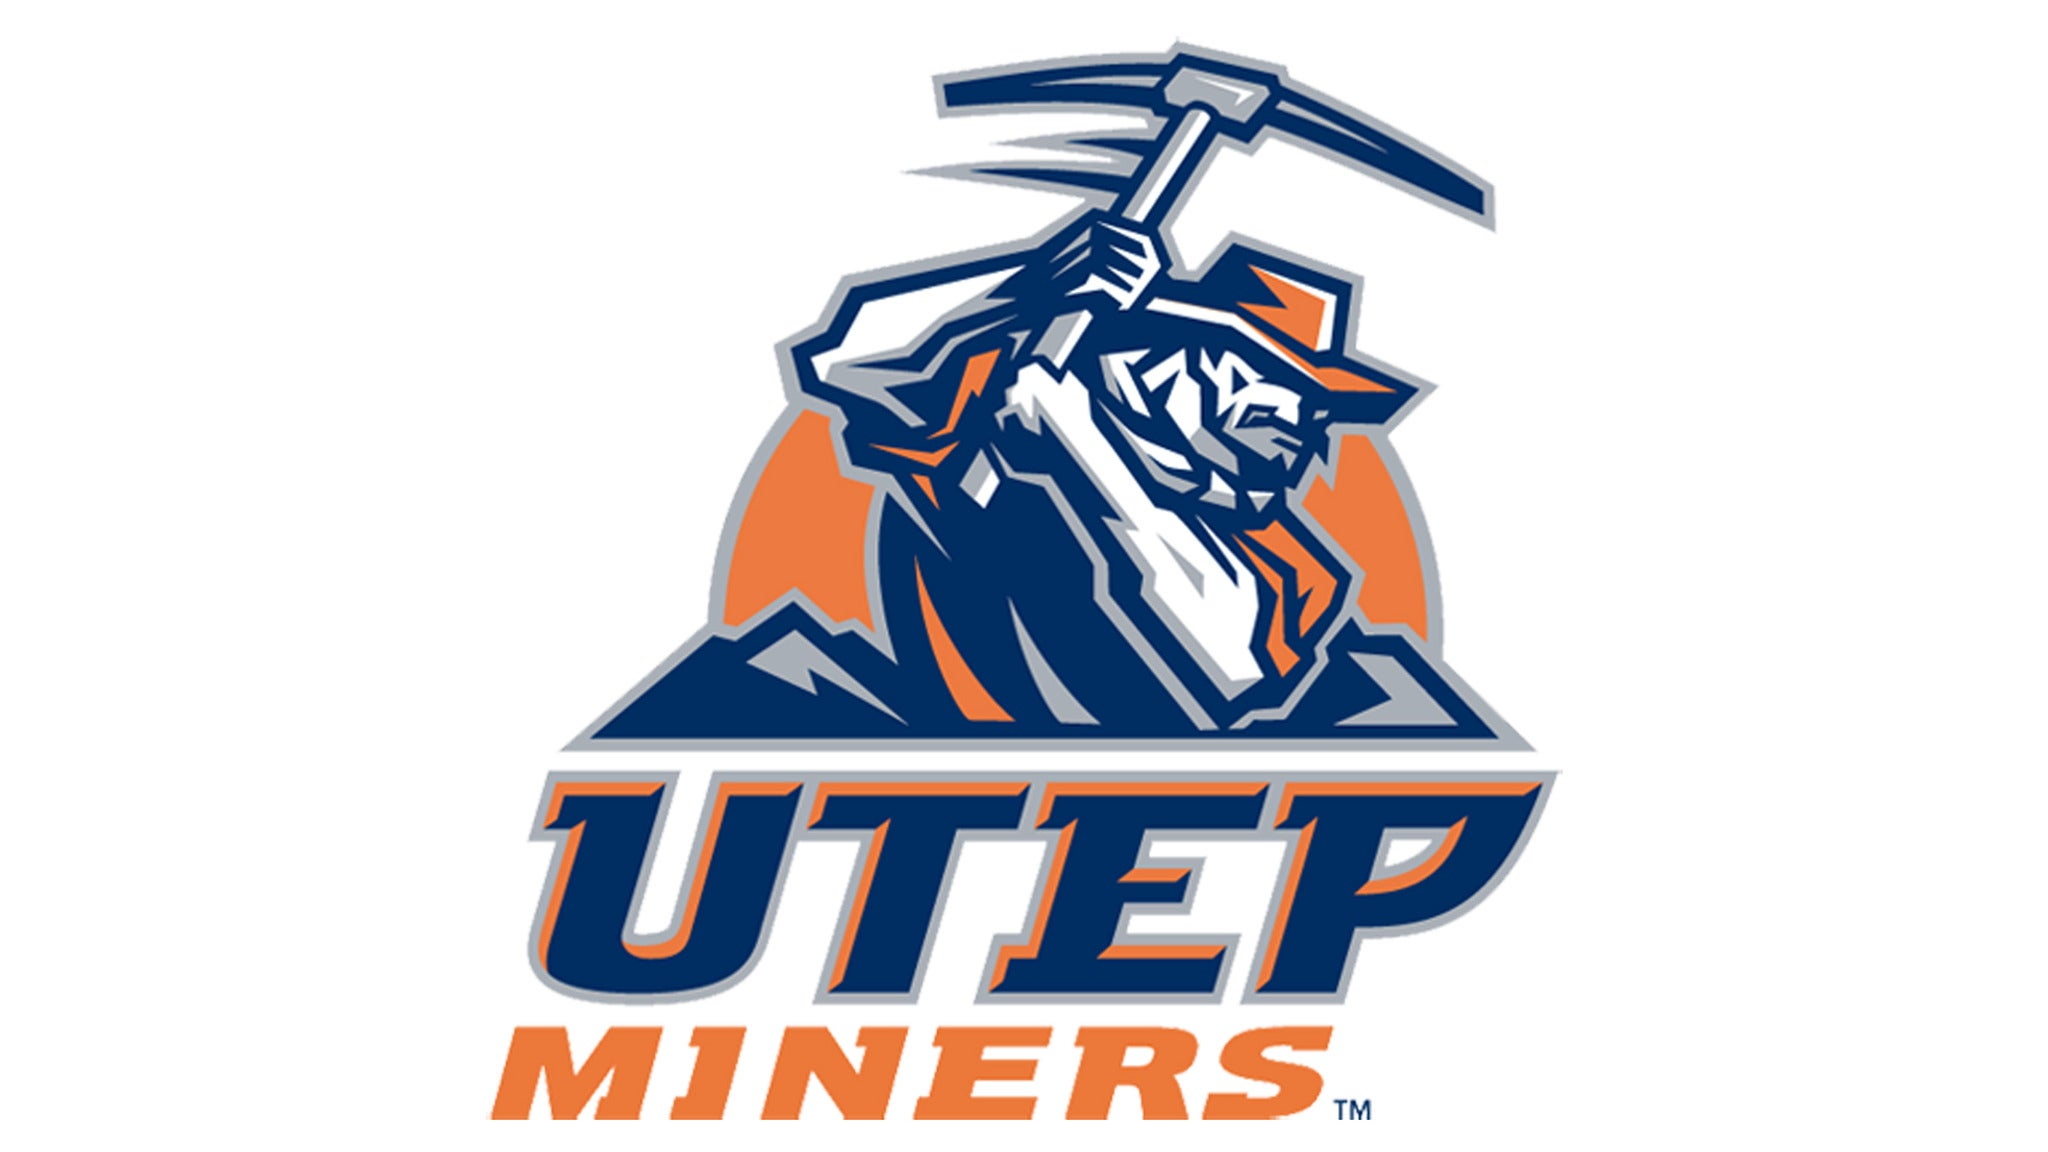 UTEP Football Mini Pack 3: Games 2-09/21, 3-10/05, 6-11/30